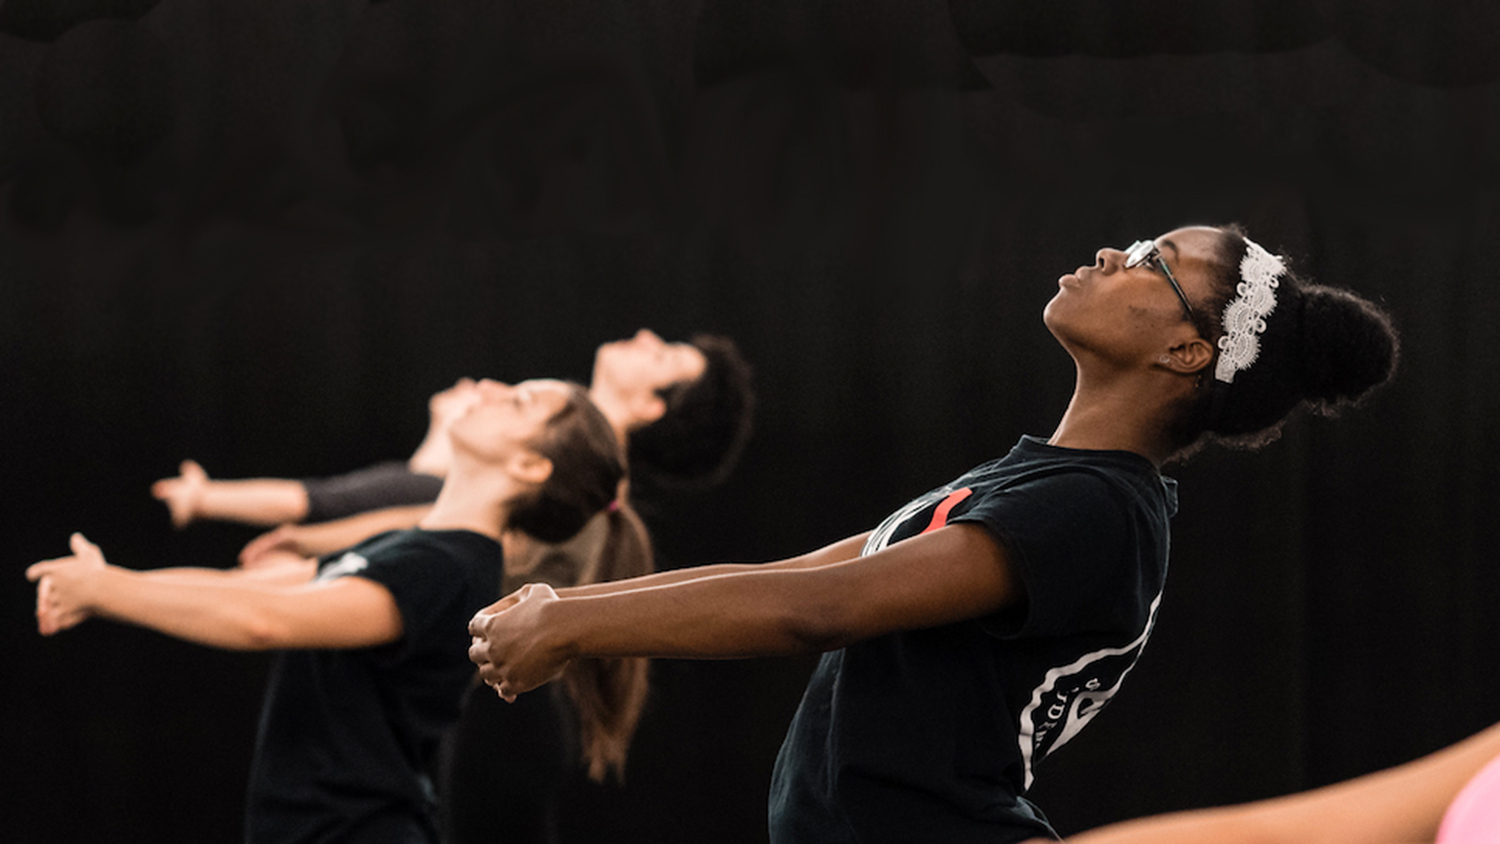 CALS student Dedreanna Scott is dancing with the NCSU Dance Company this Thursday